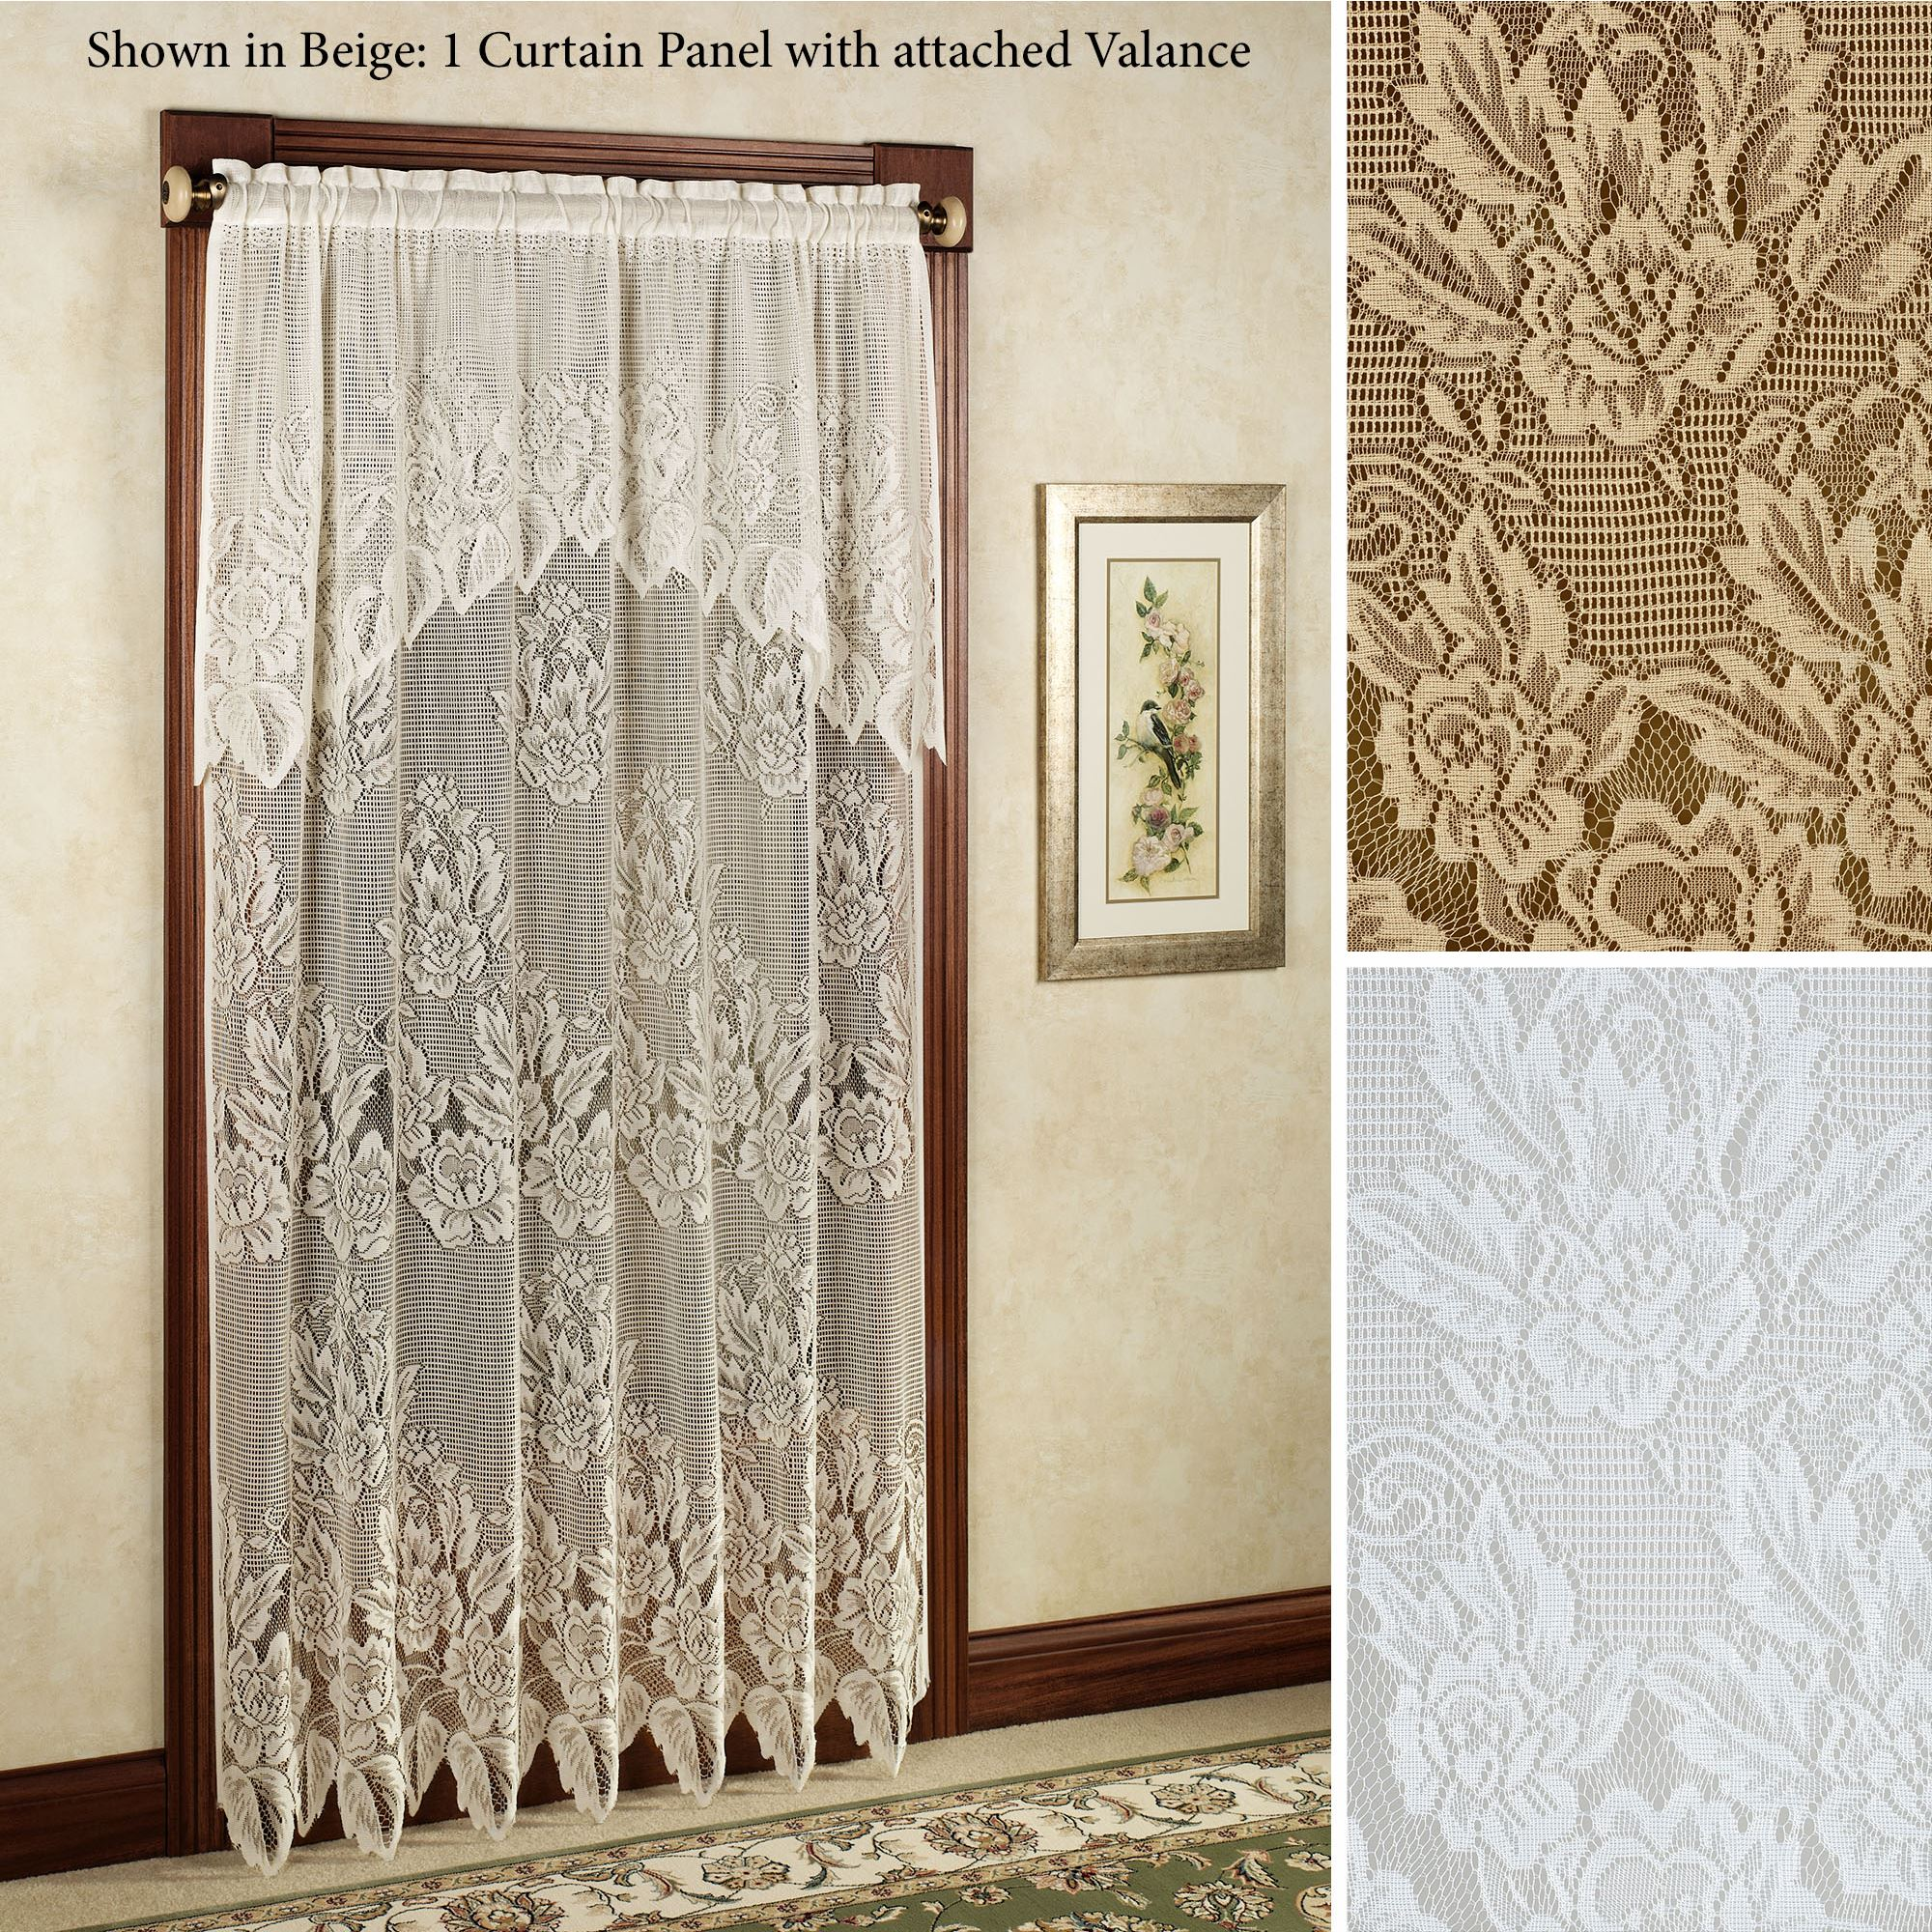 French Lace Curtains Easy Style Hallie Magnolia Lace Curtain Panel With Attached Valance